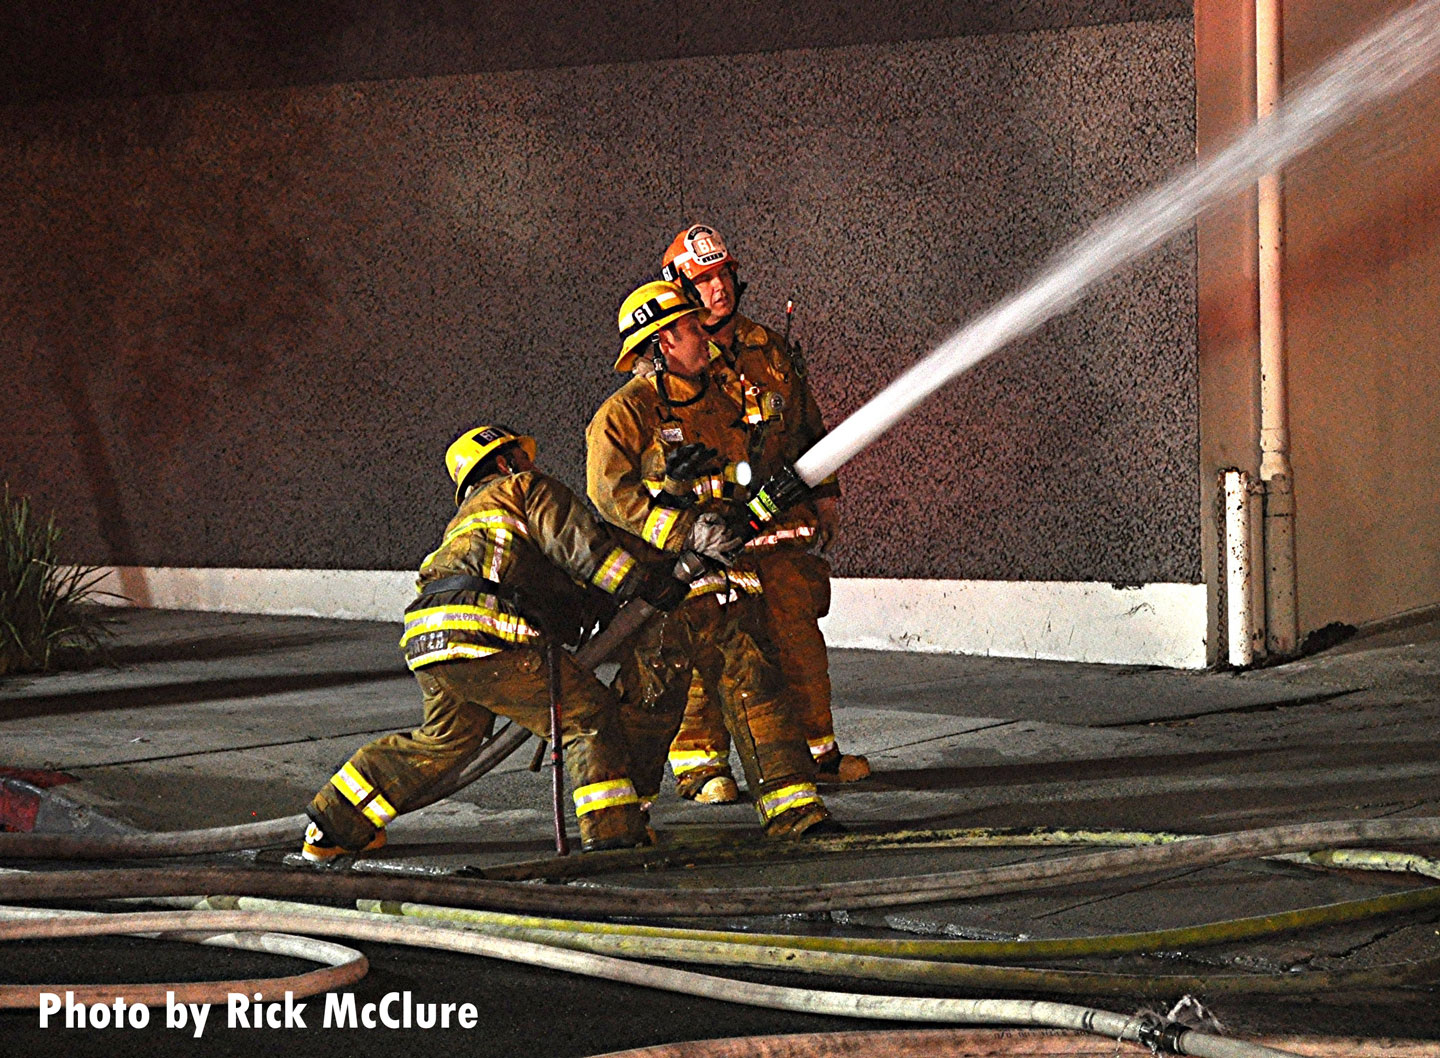 Firefighters control a stream on the exterior of the building.